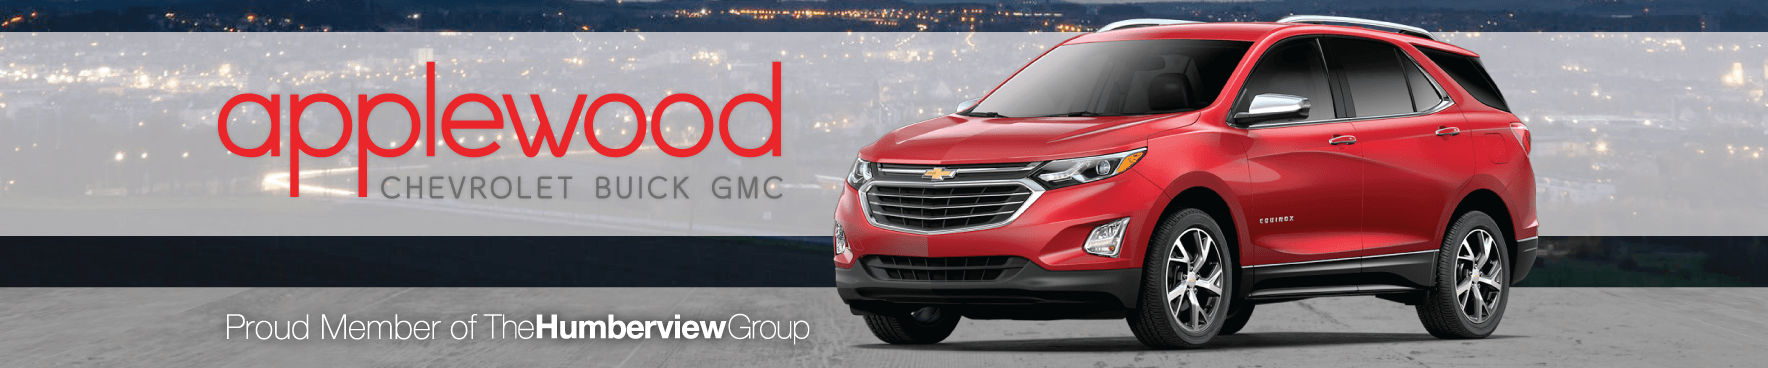 Applewood Chevrolet Cadillac Buick GMC in Mississauga